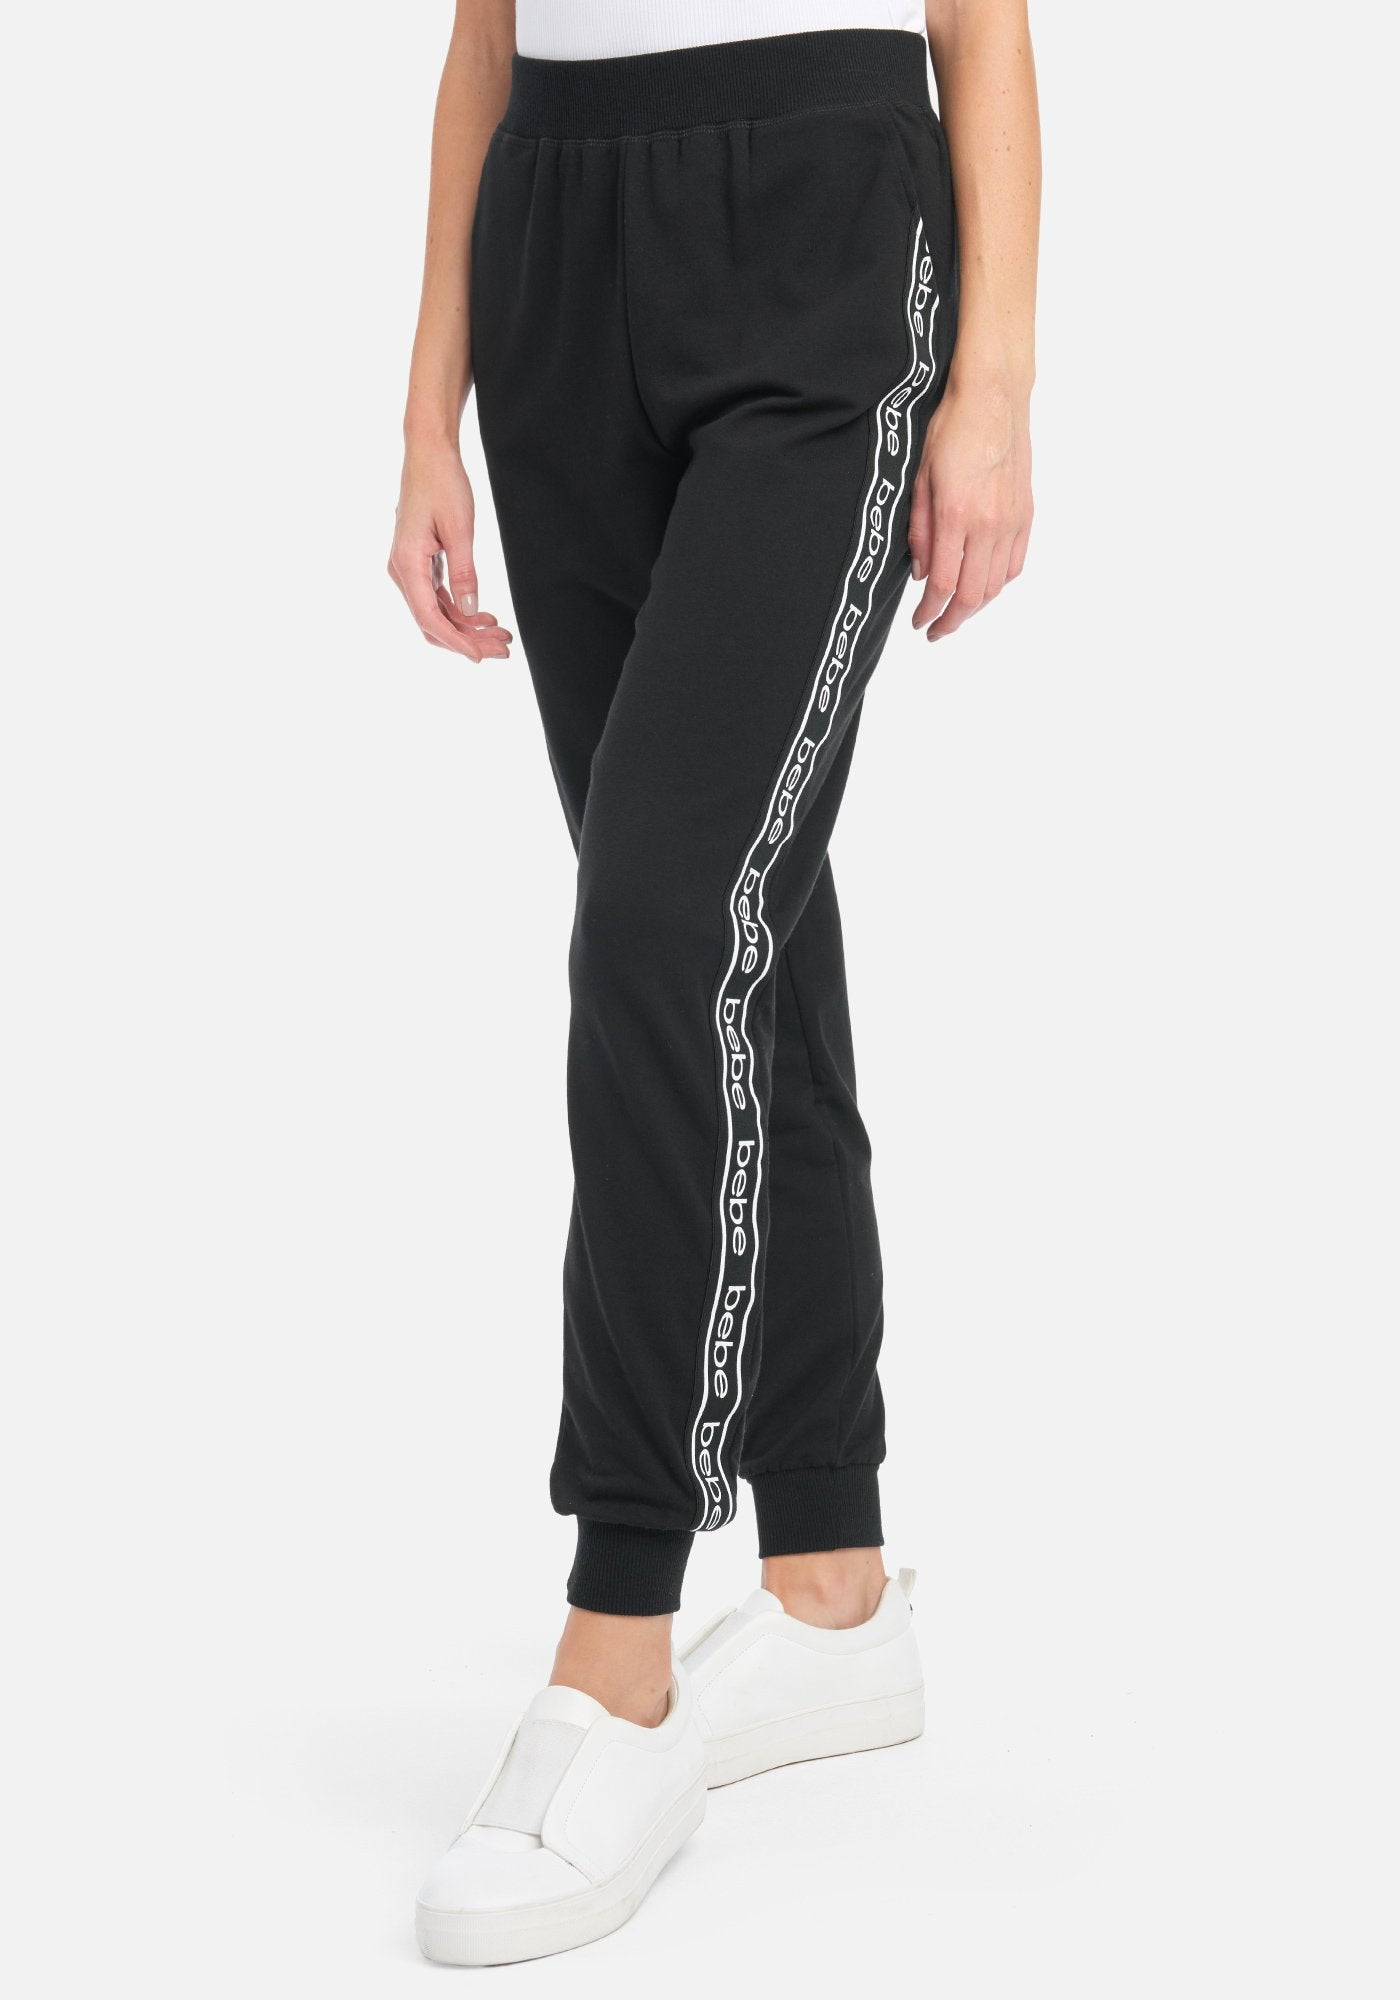 Women's Bebe Logo Side Taping Jogger Pant, Size Small in Black Cotton/Spandex